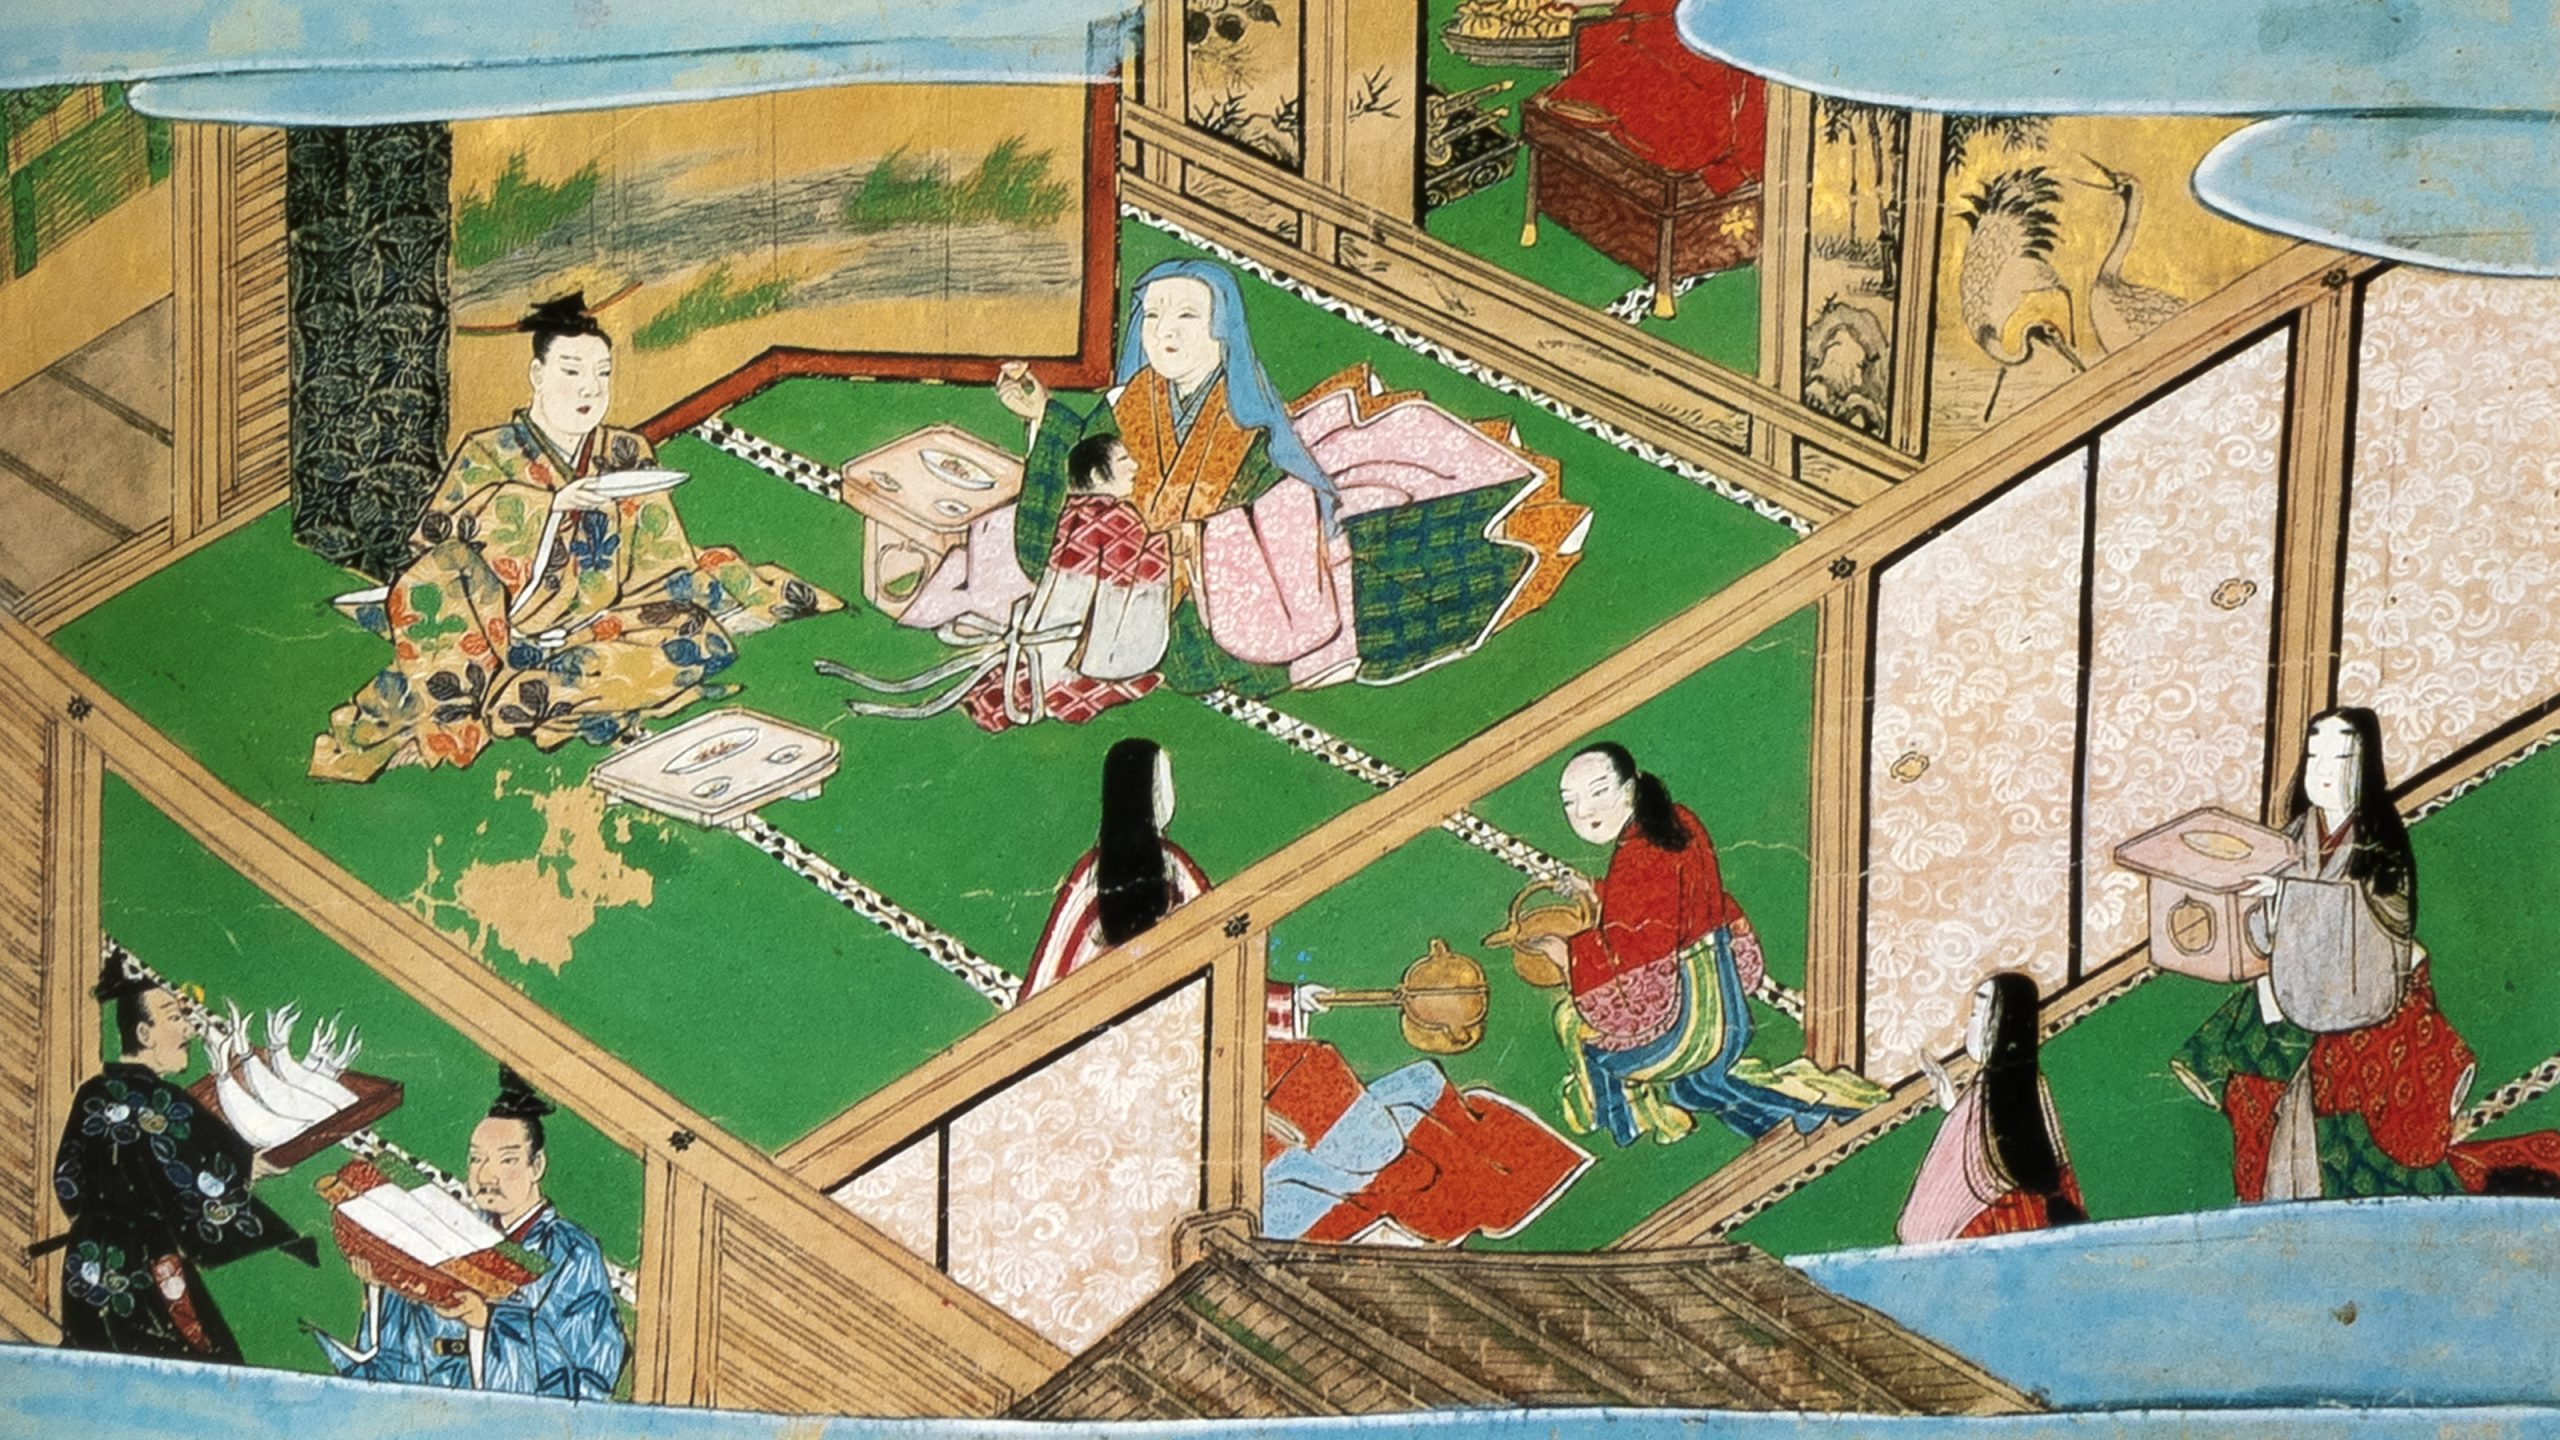 Sale 697: Art & Archaeology of Asia - Travel & Exploration - Cartography